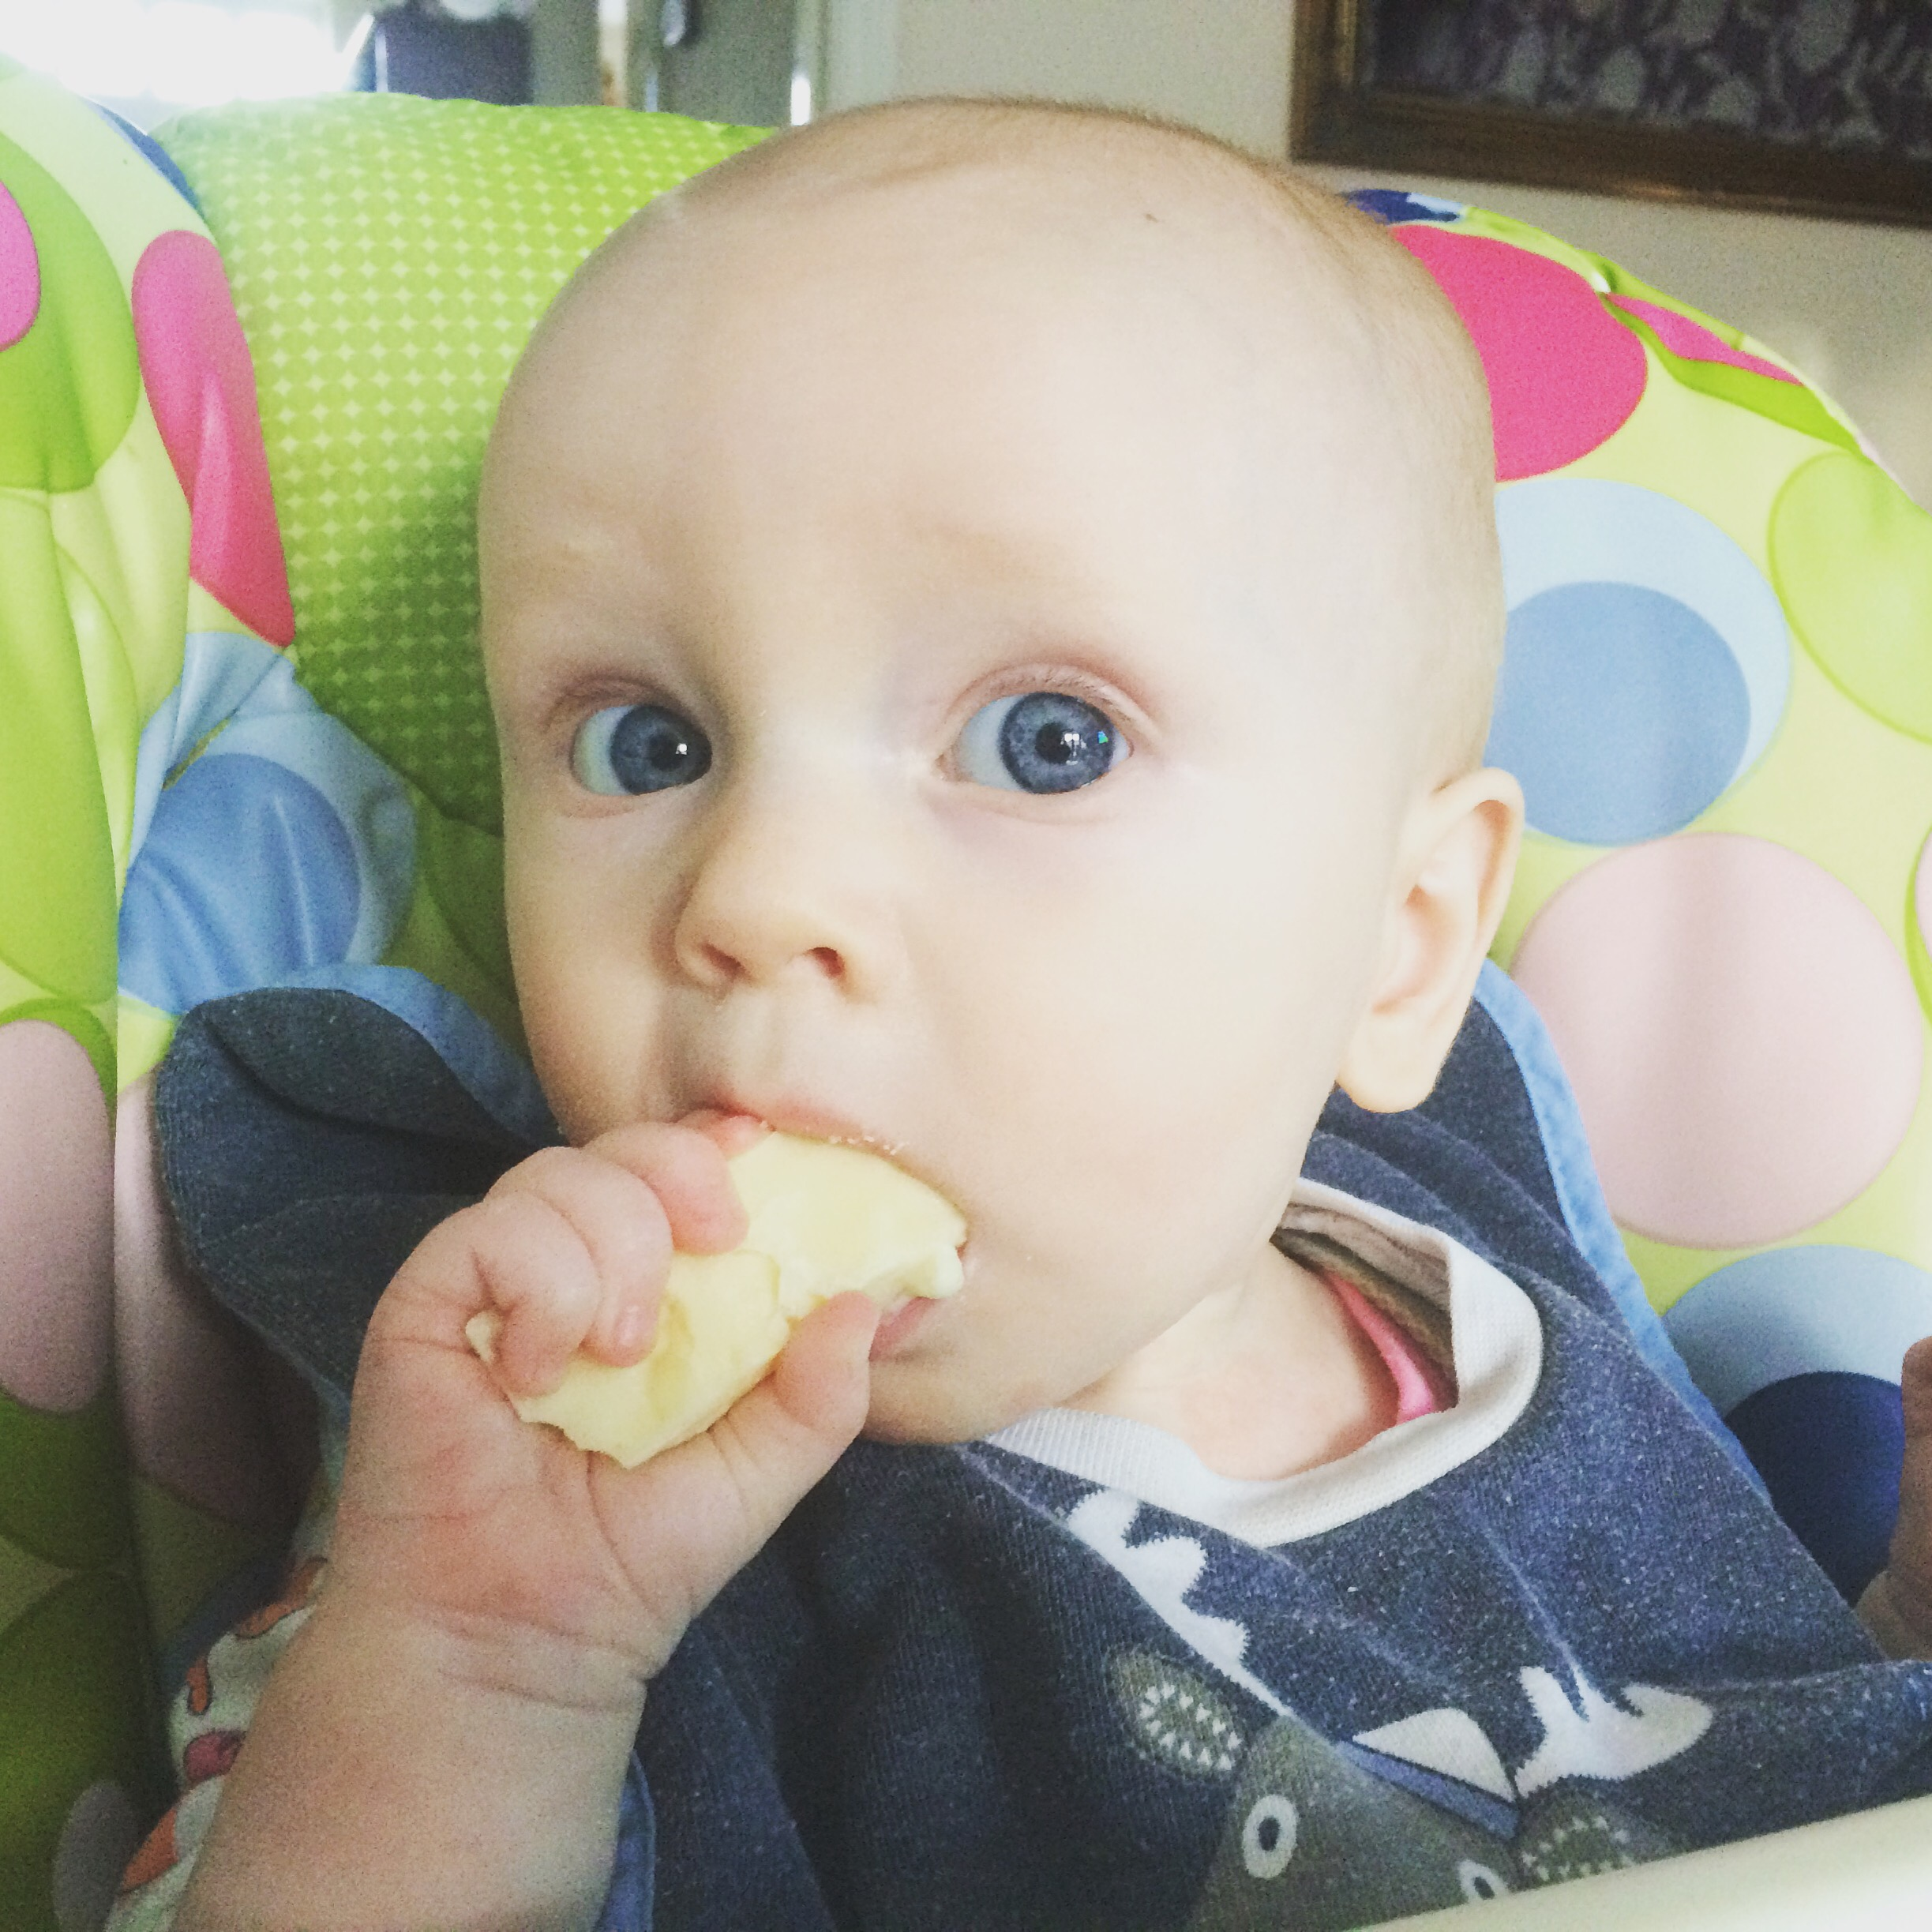 A baby eating a block of cheese